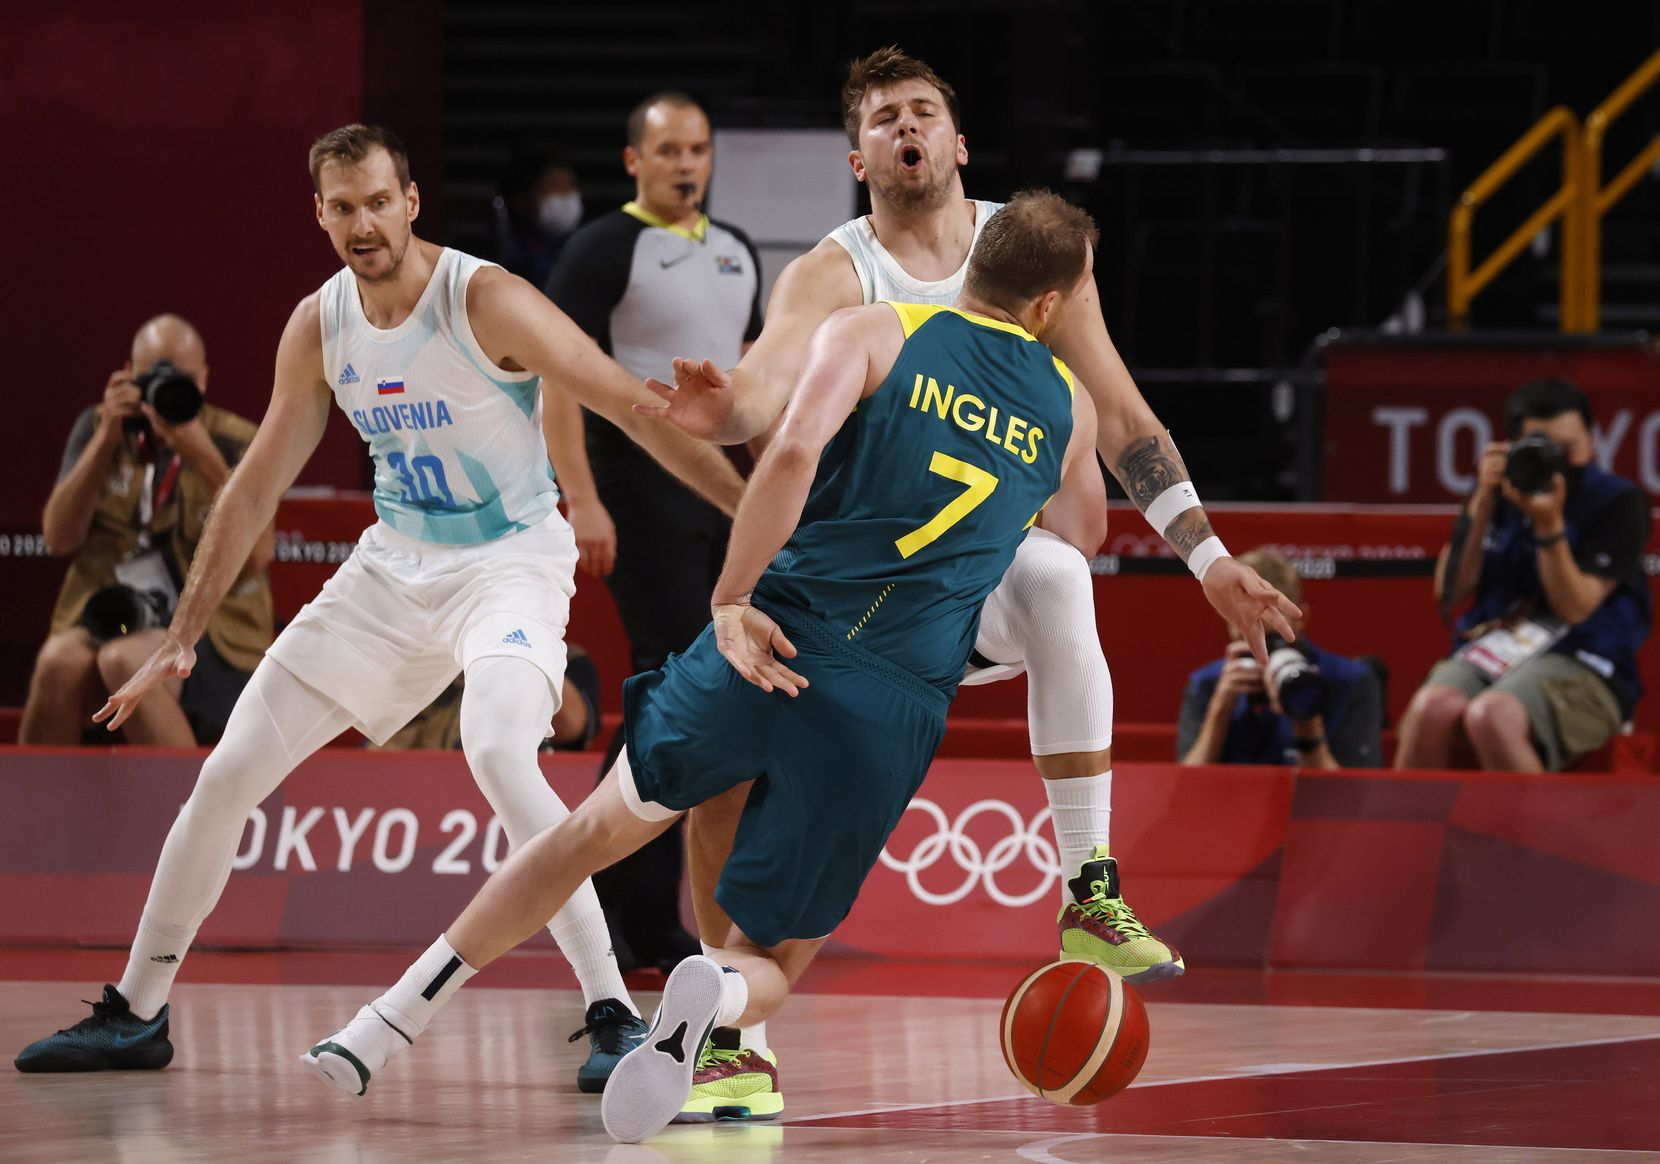 Slovenia's Luka Doncic (77) is fouled by Australia's Joe Ingles (7) during the first quarter of play in the bronze medal basketball game at the postponed 2020 Tokyo Olympics at Saitama Super Arena, on Saturday, August 7, 2021, in Saitama, Japan. (Vernon Bryant/The Dallas Morning News)